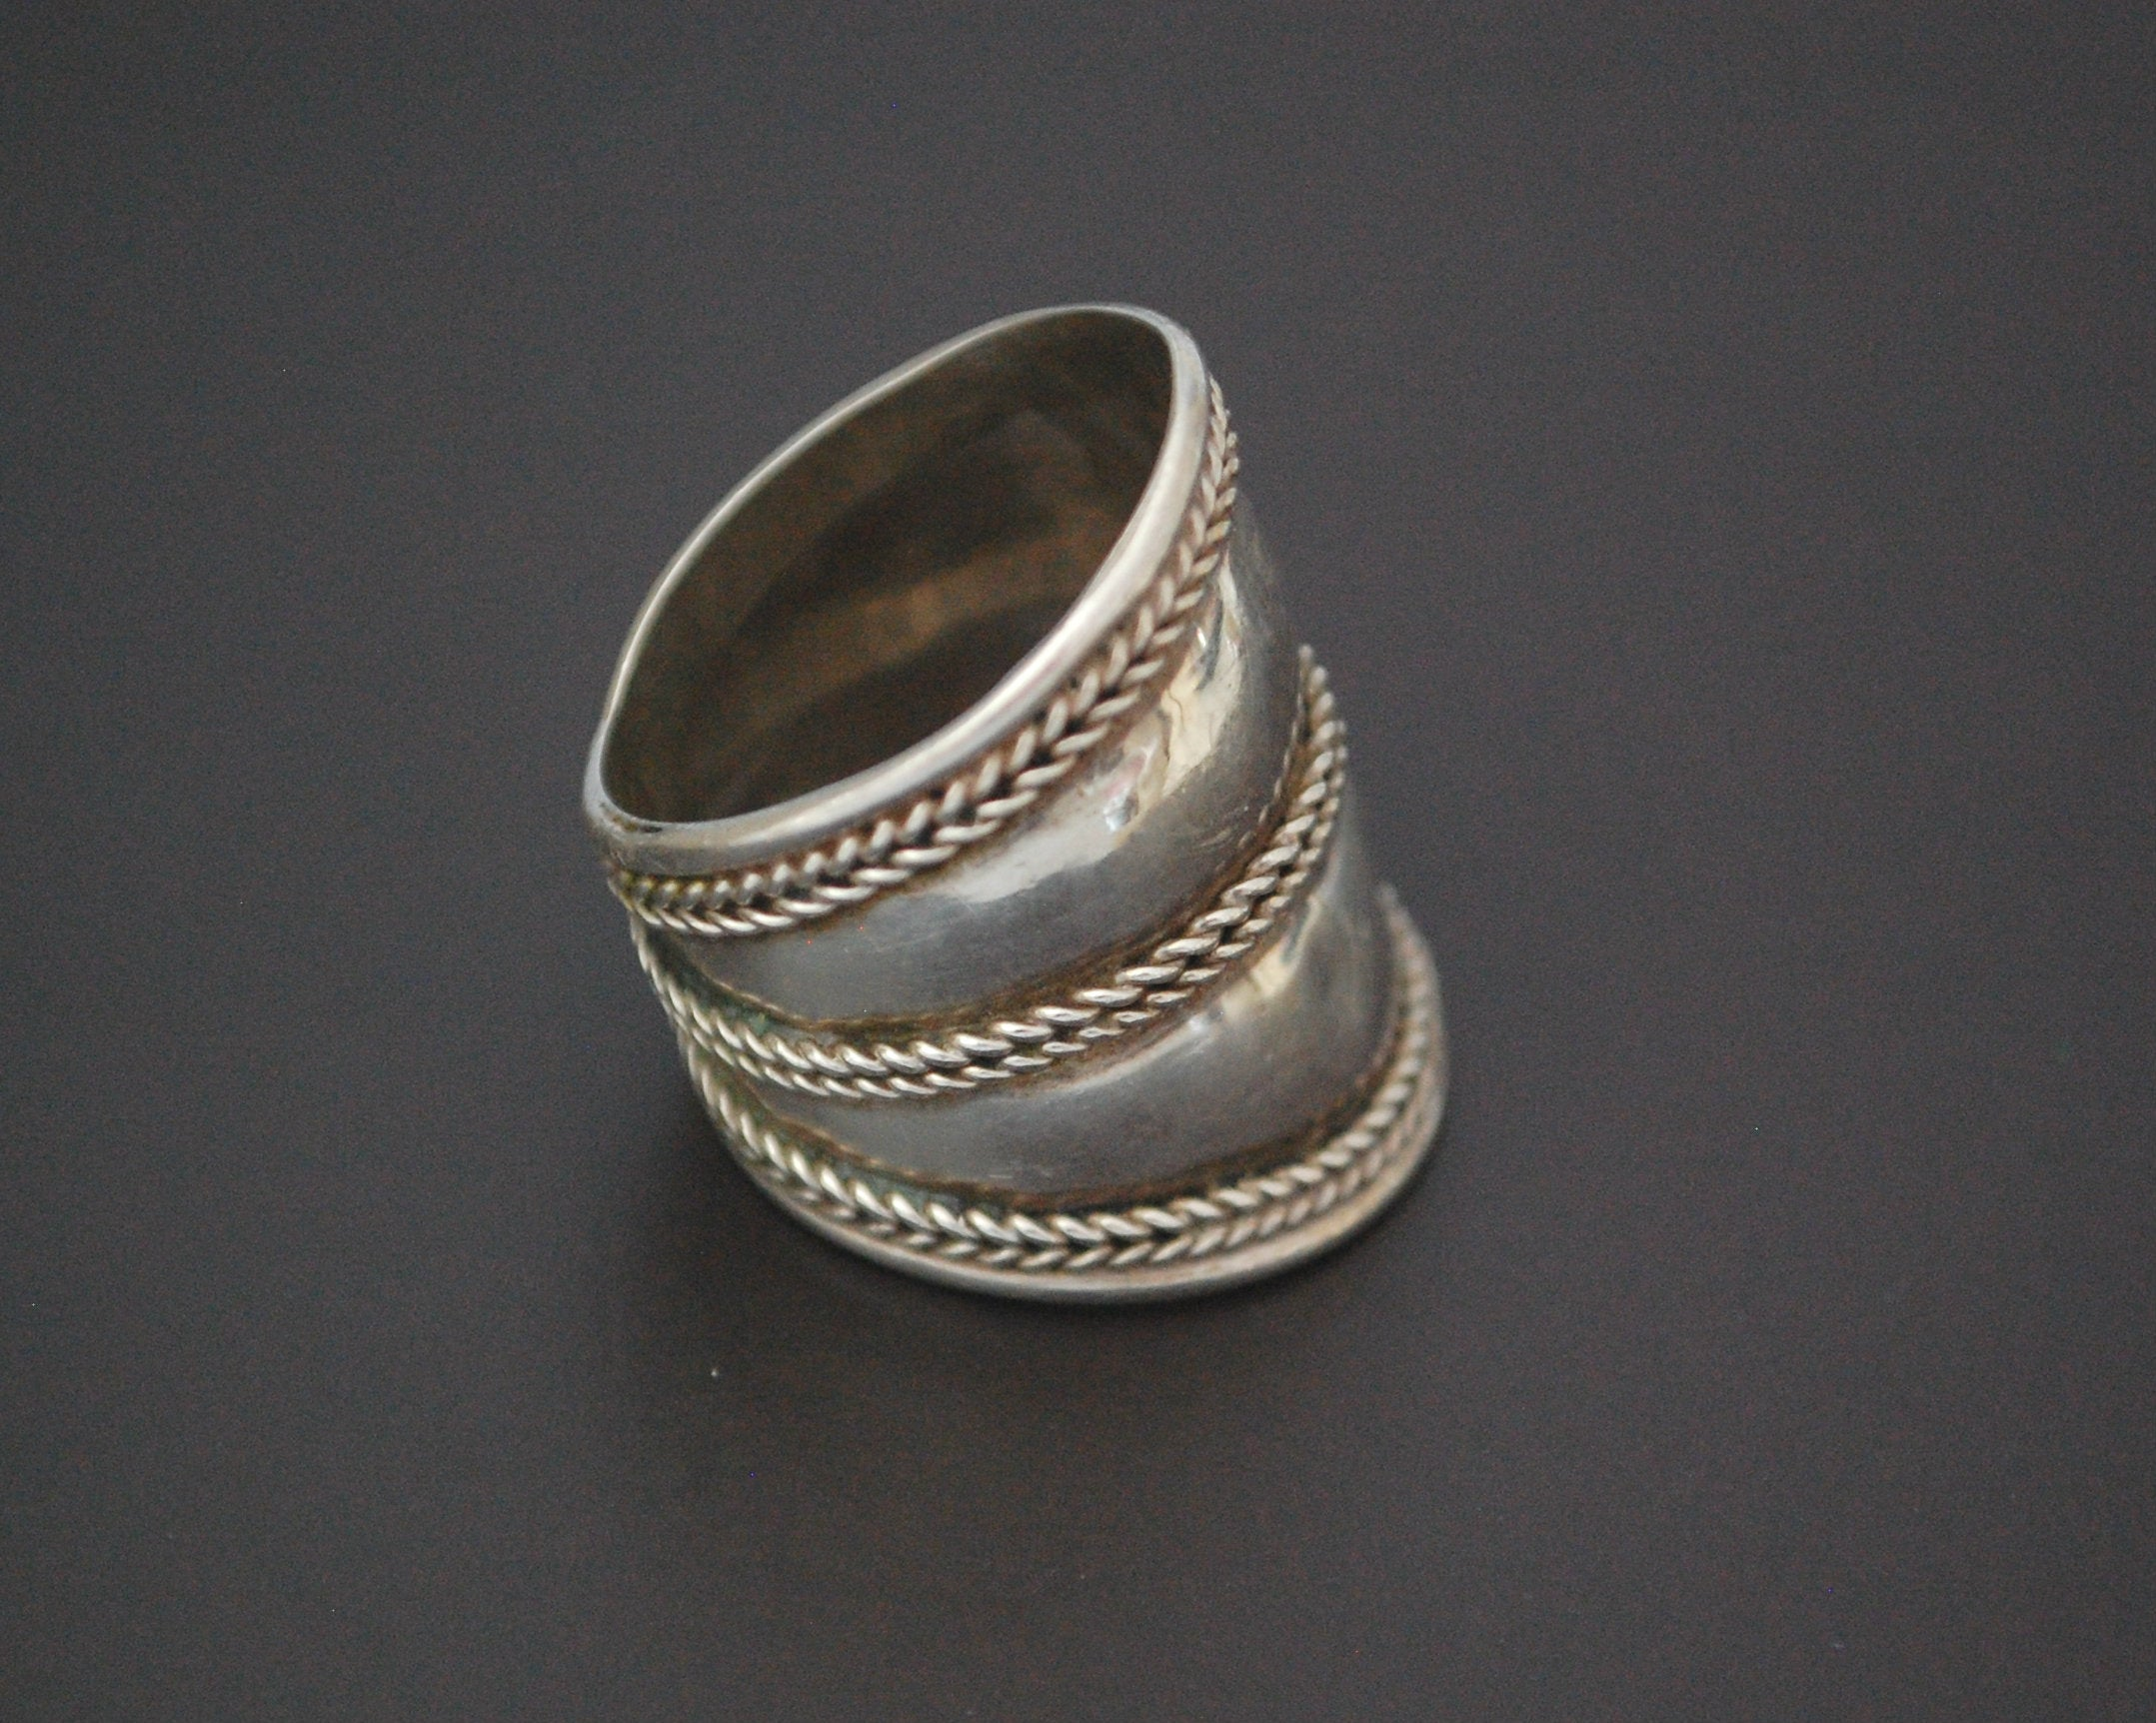 Ethnic Cigar Band Ring - Size 8